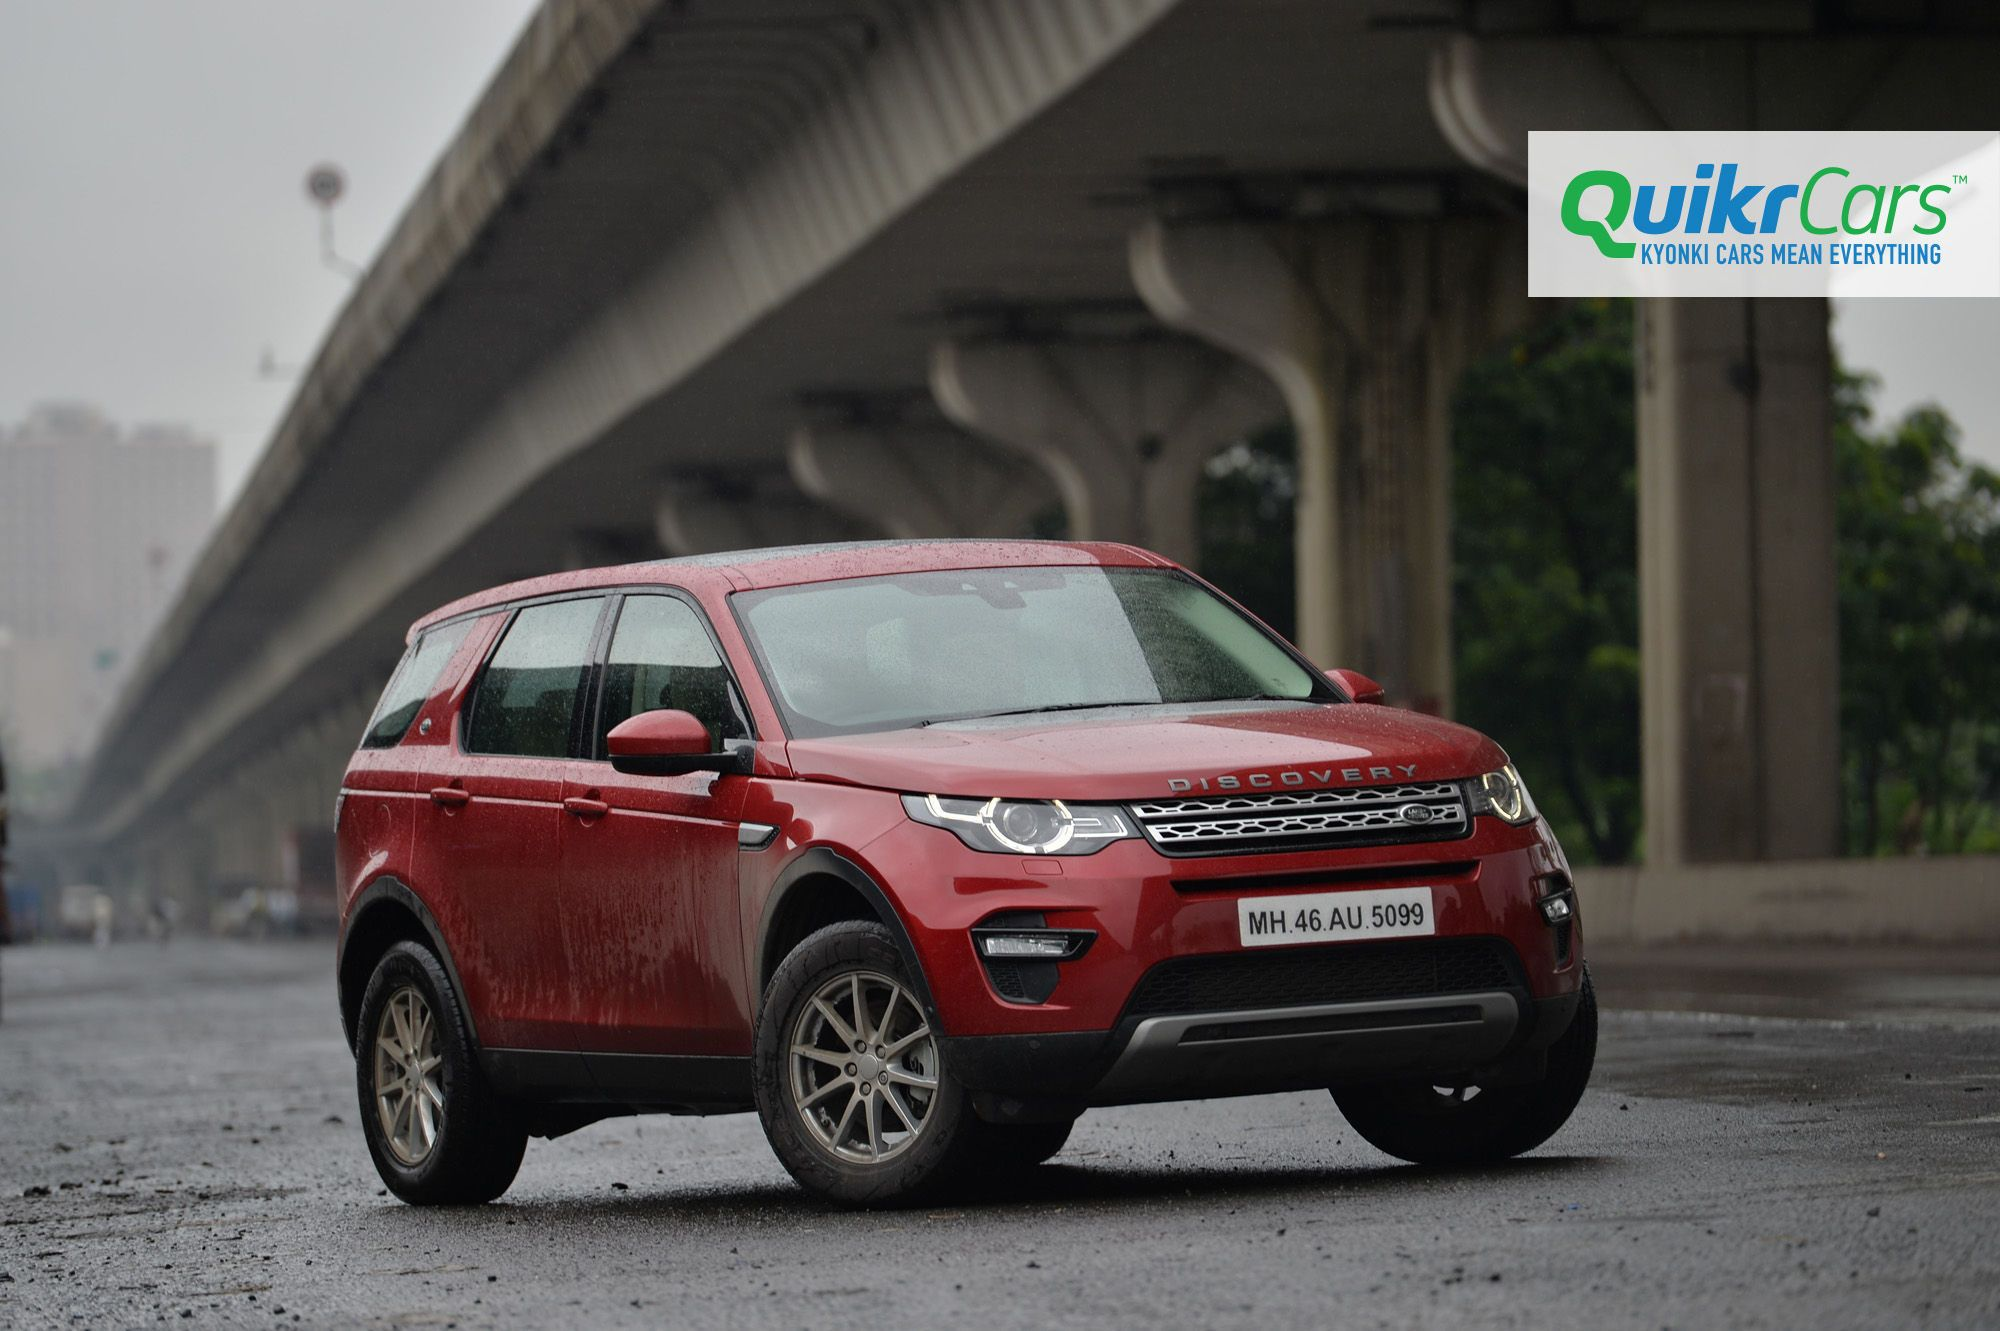 landrover hse luxury drive expert rover price sport review of discovery test land